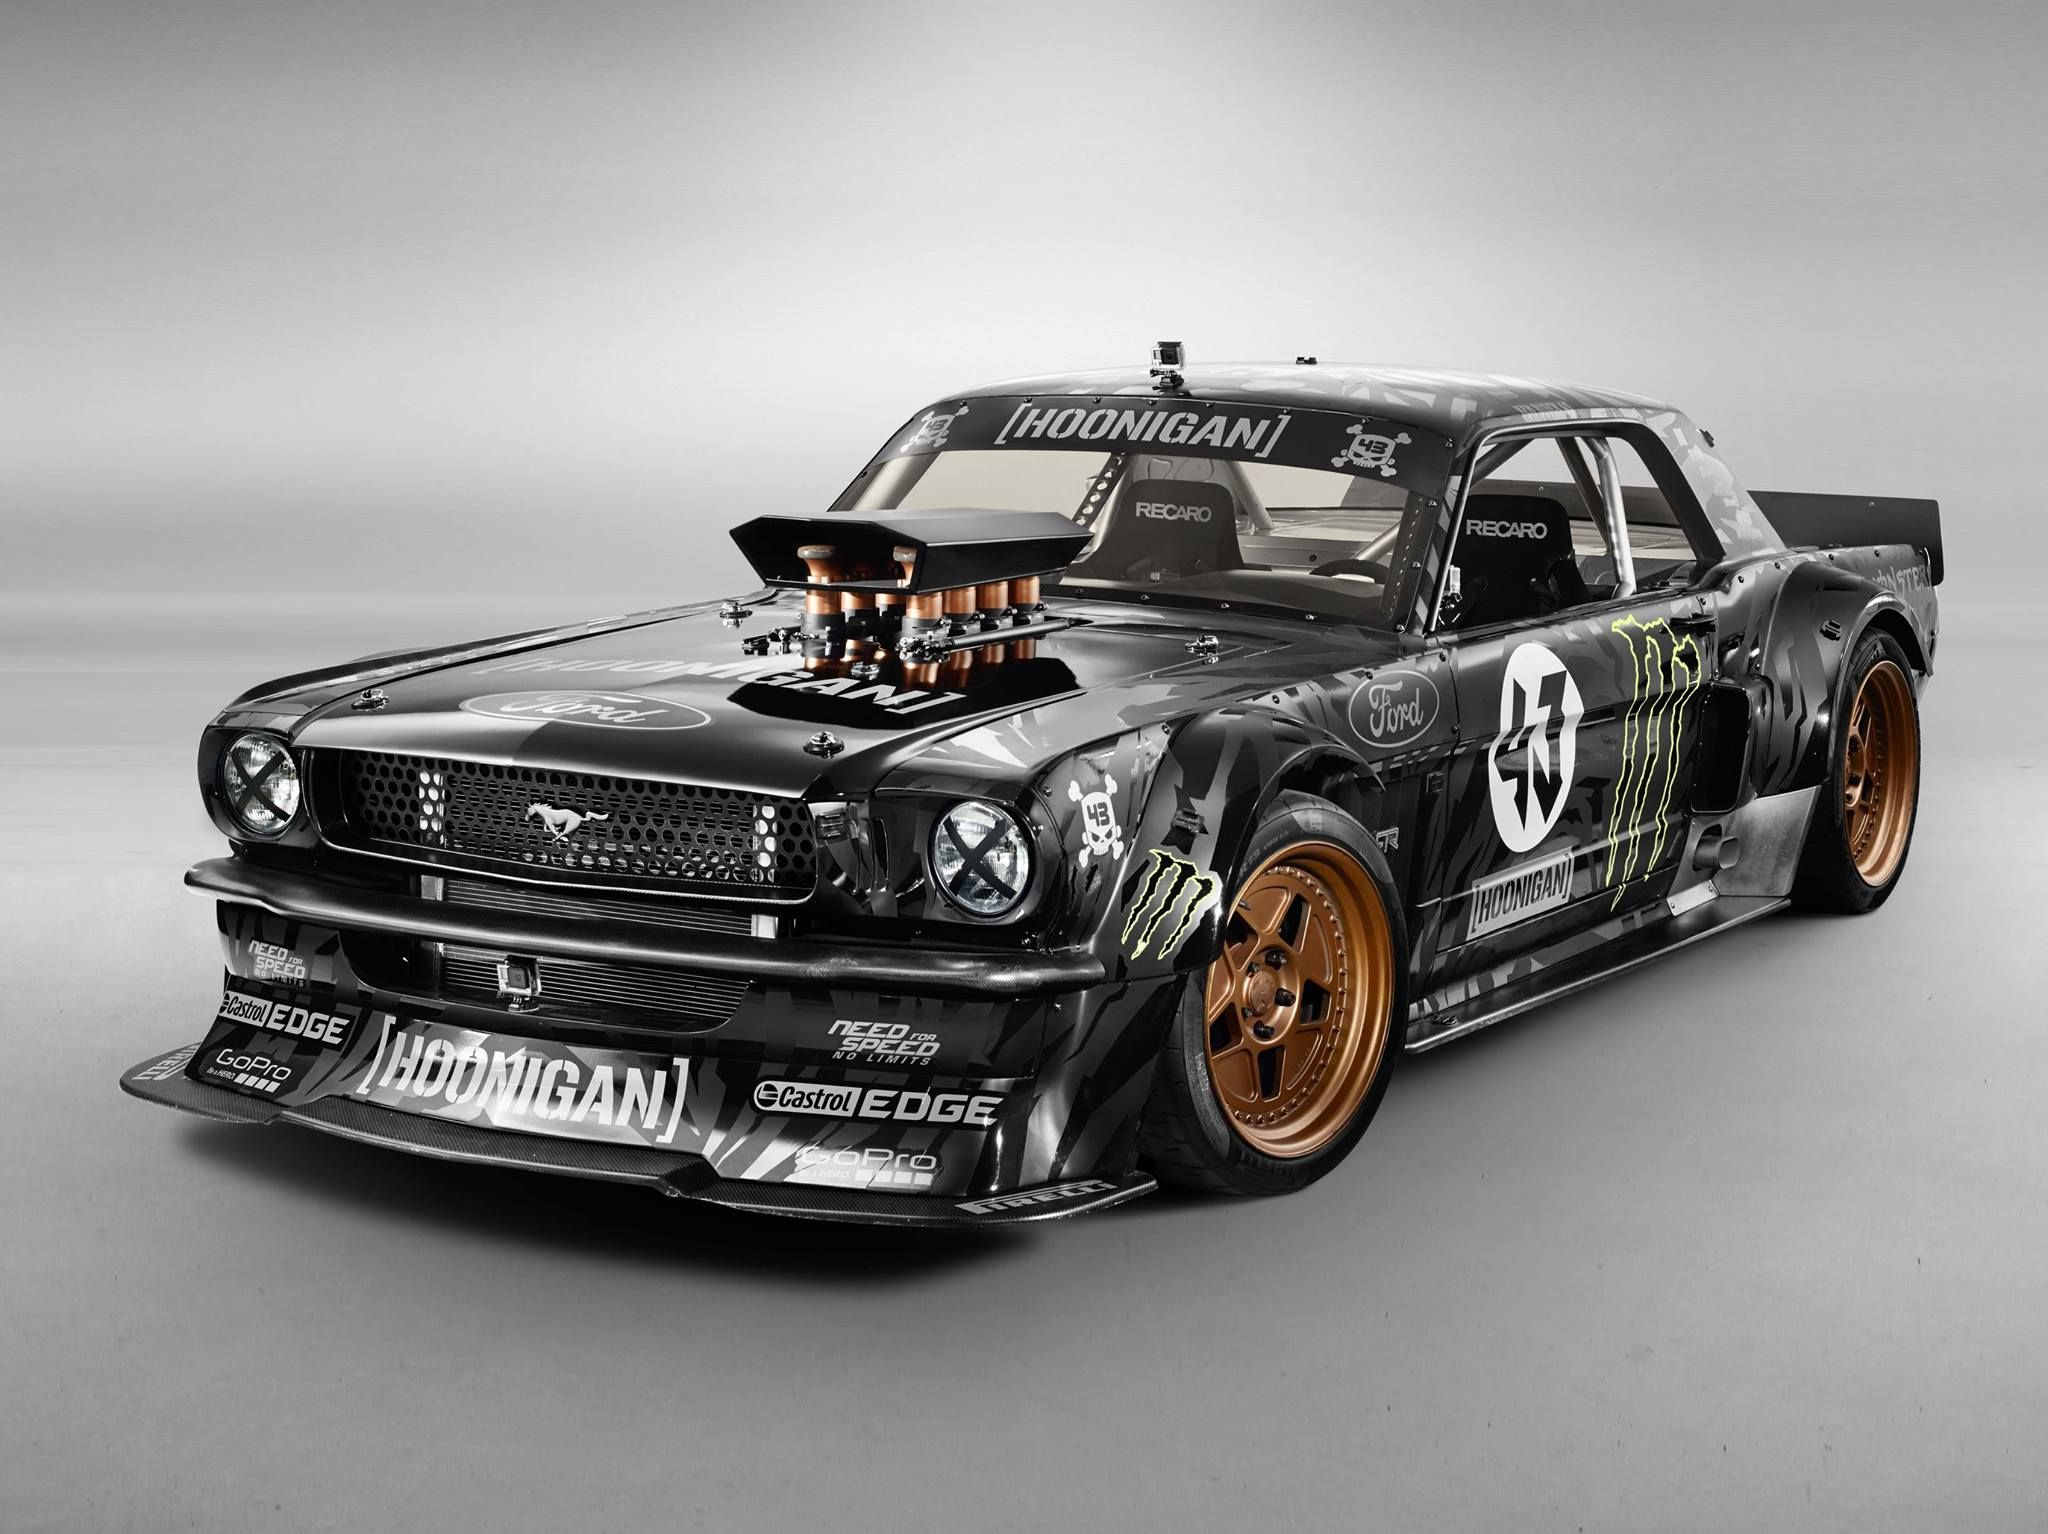 Why Tape On The Headlights Because Race Car Ken Block Ford